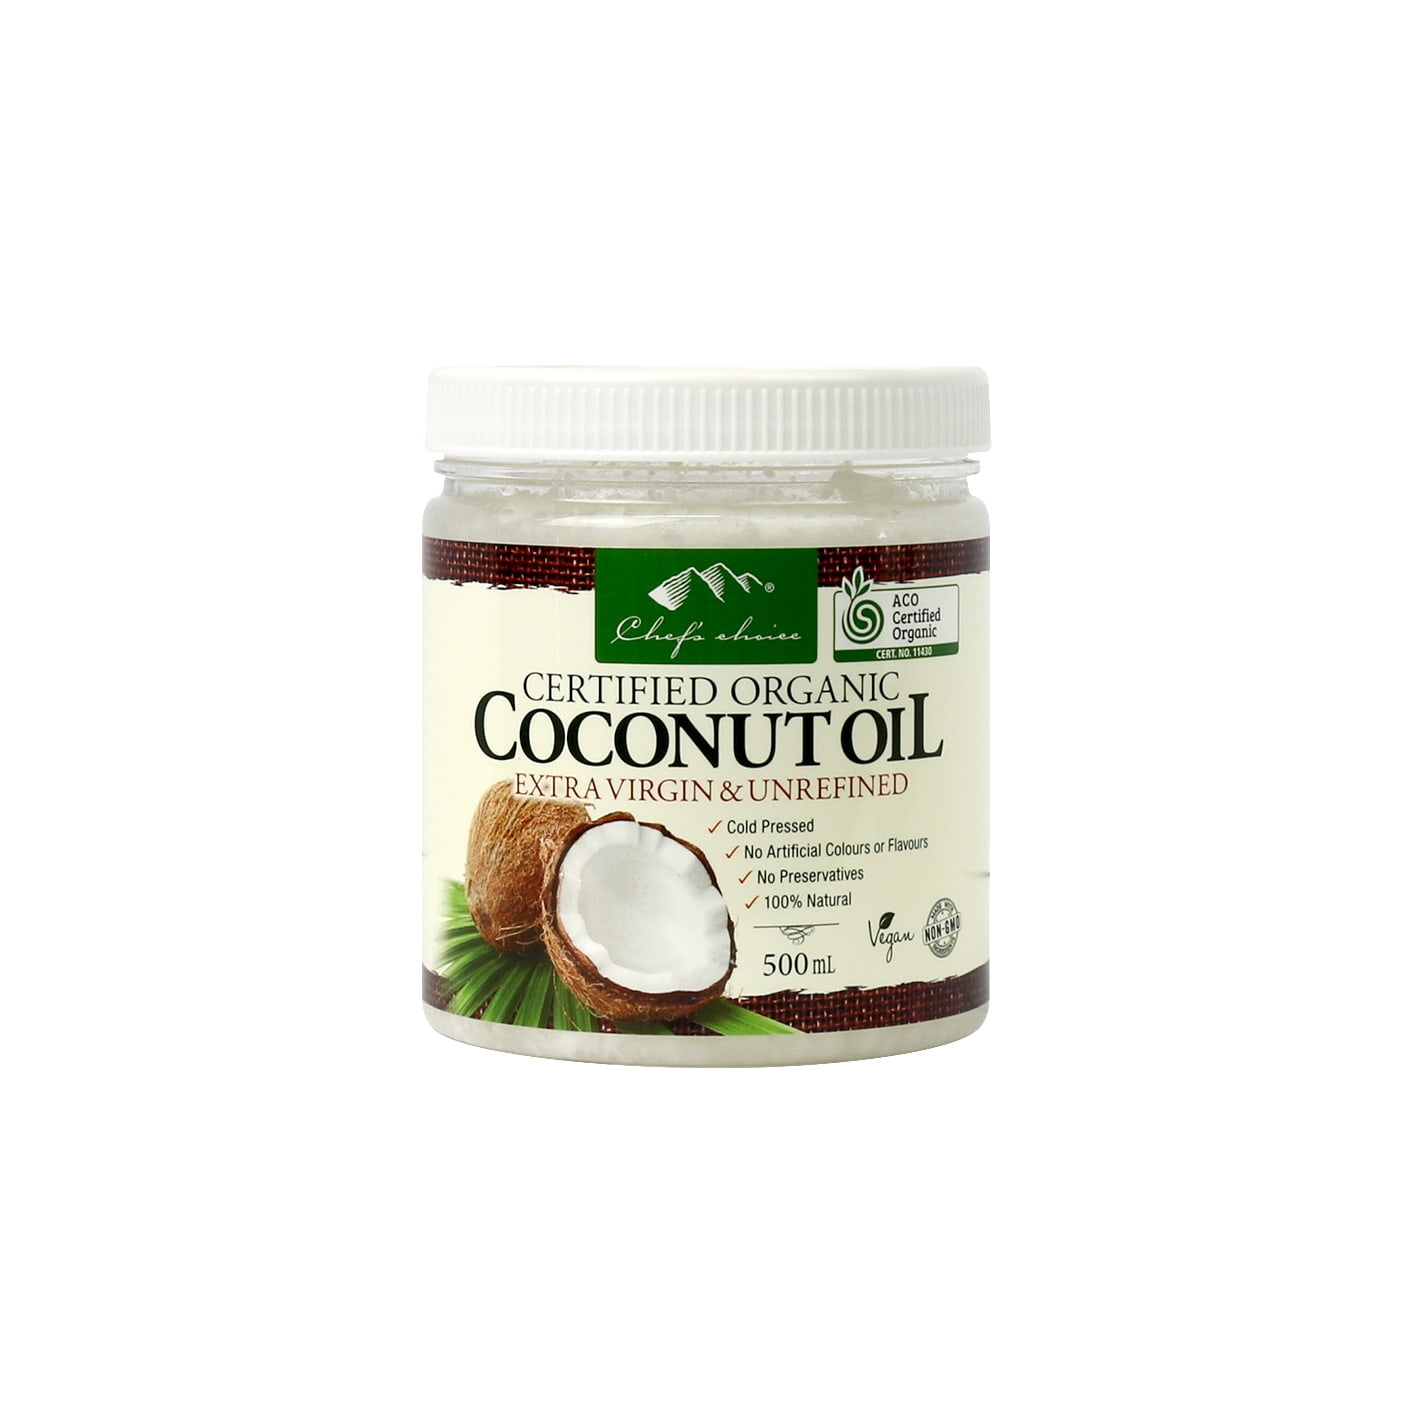 Org Coconut Oil Extra Virgin & Unrefined 500mL